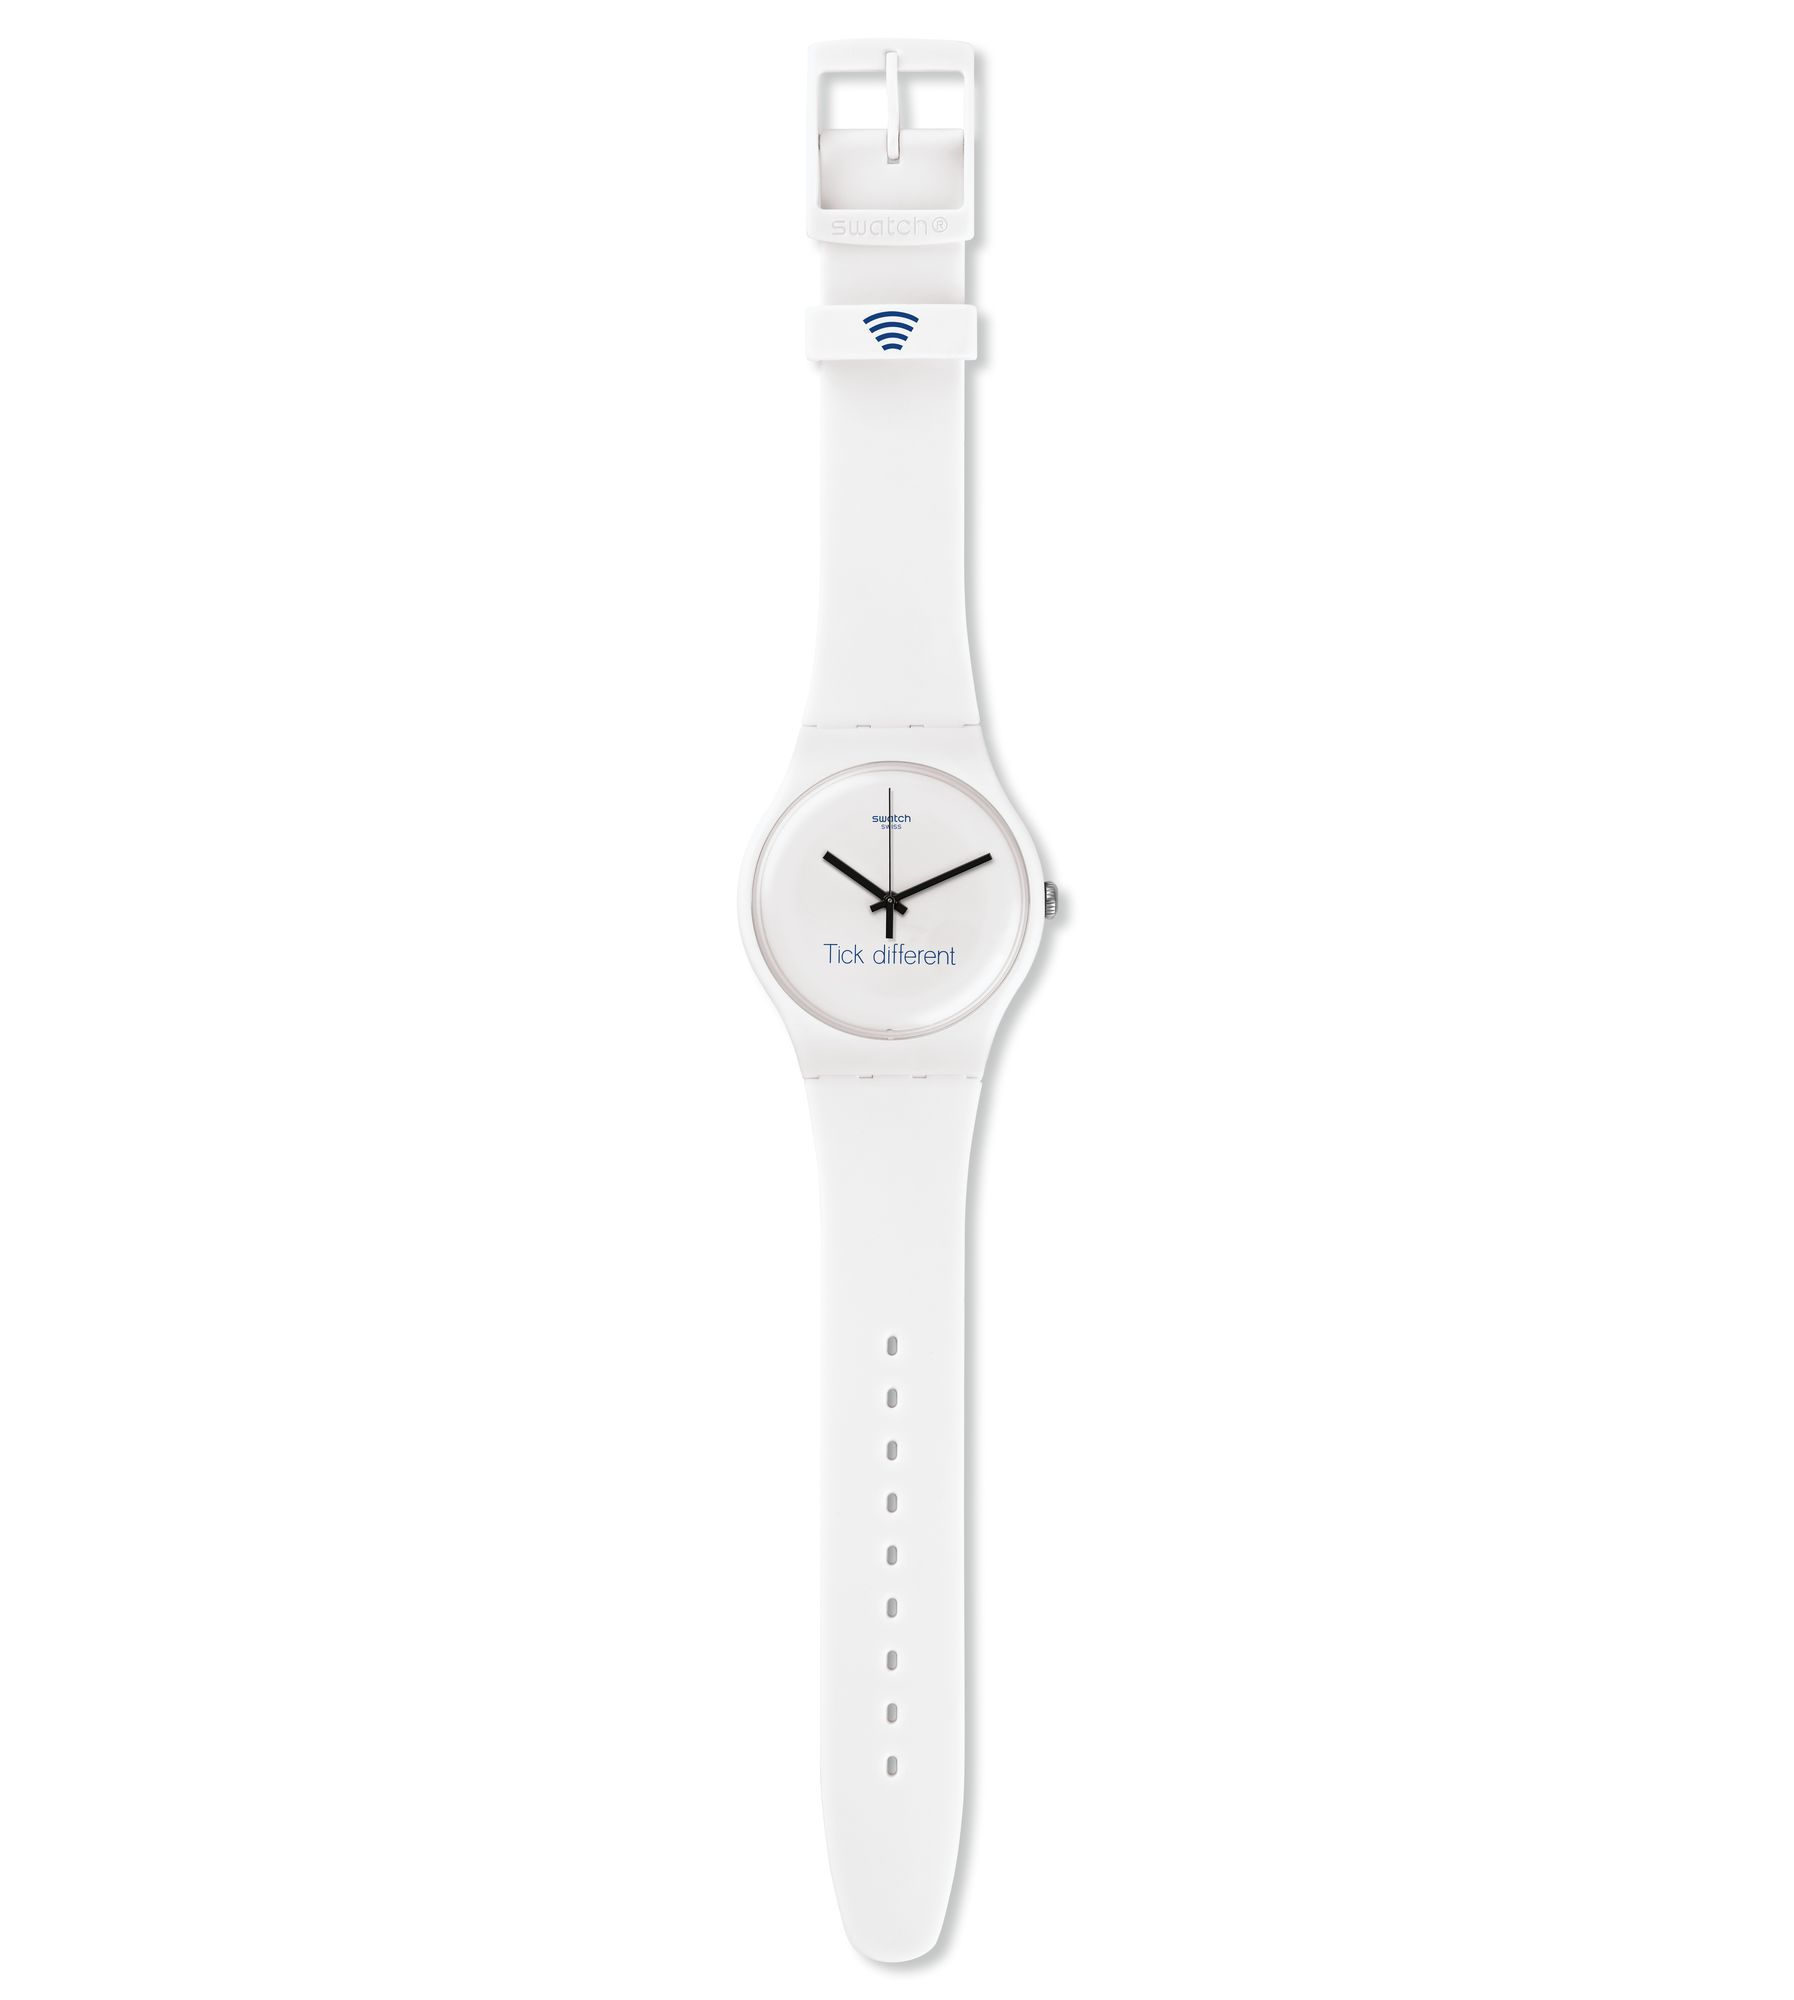 SWATCH BELLAMY TICK DIFFERENT